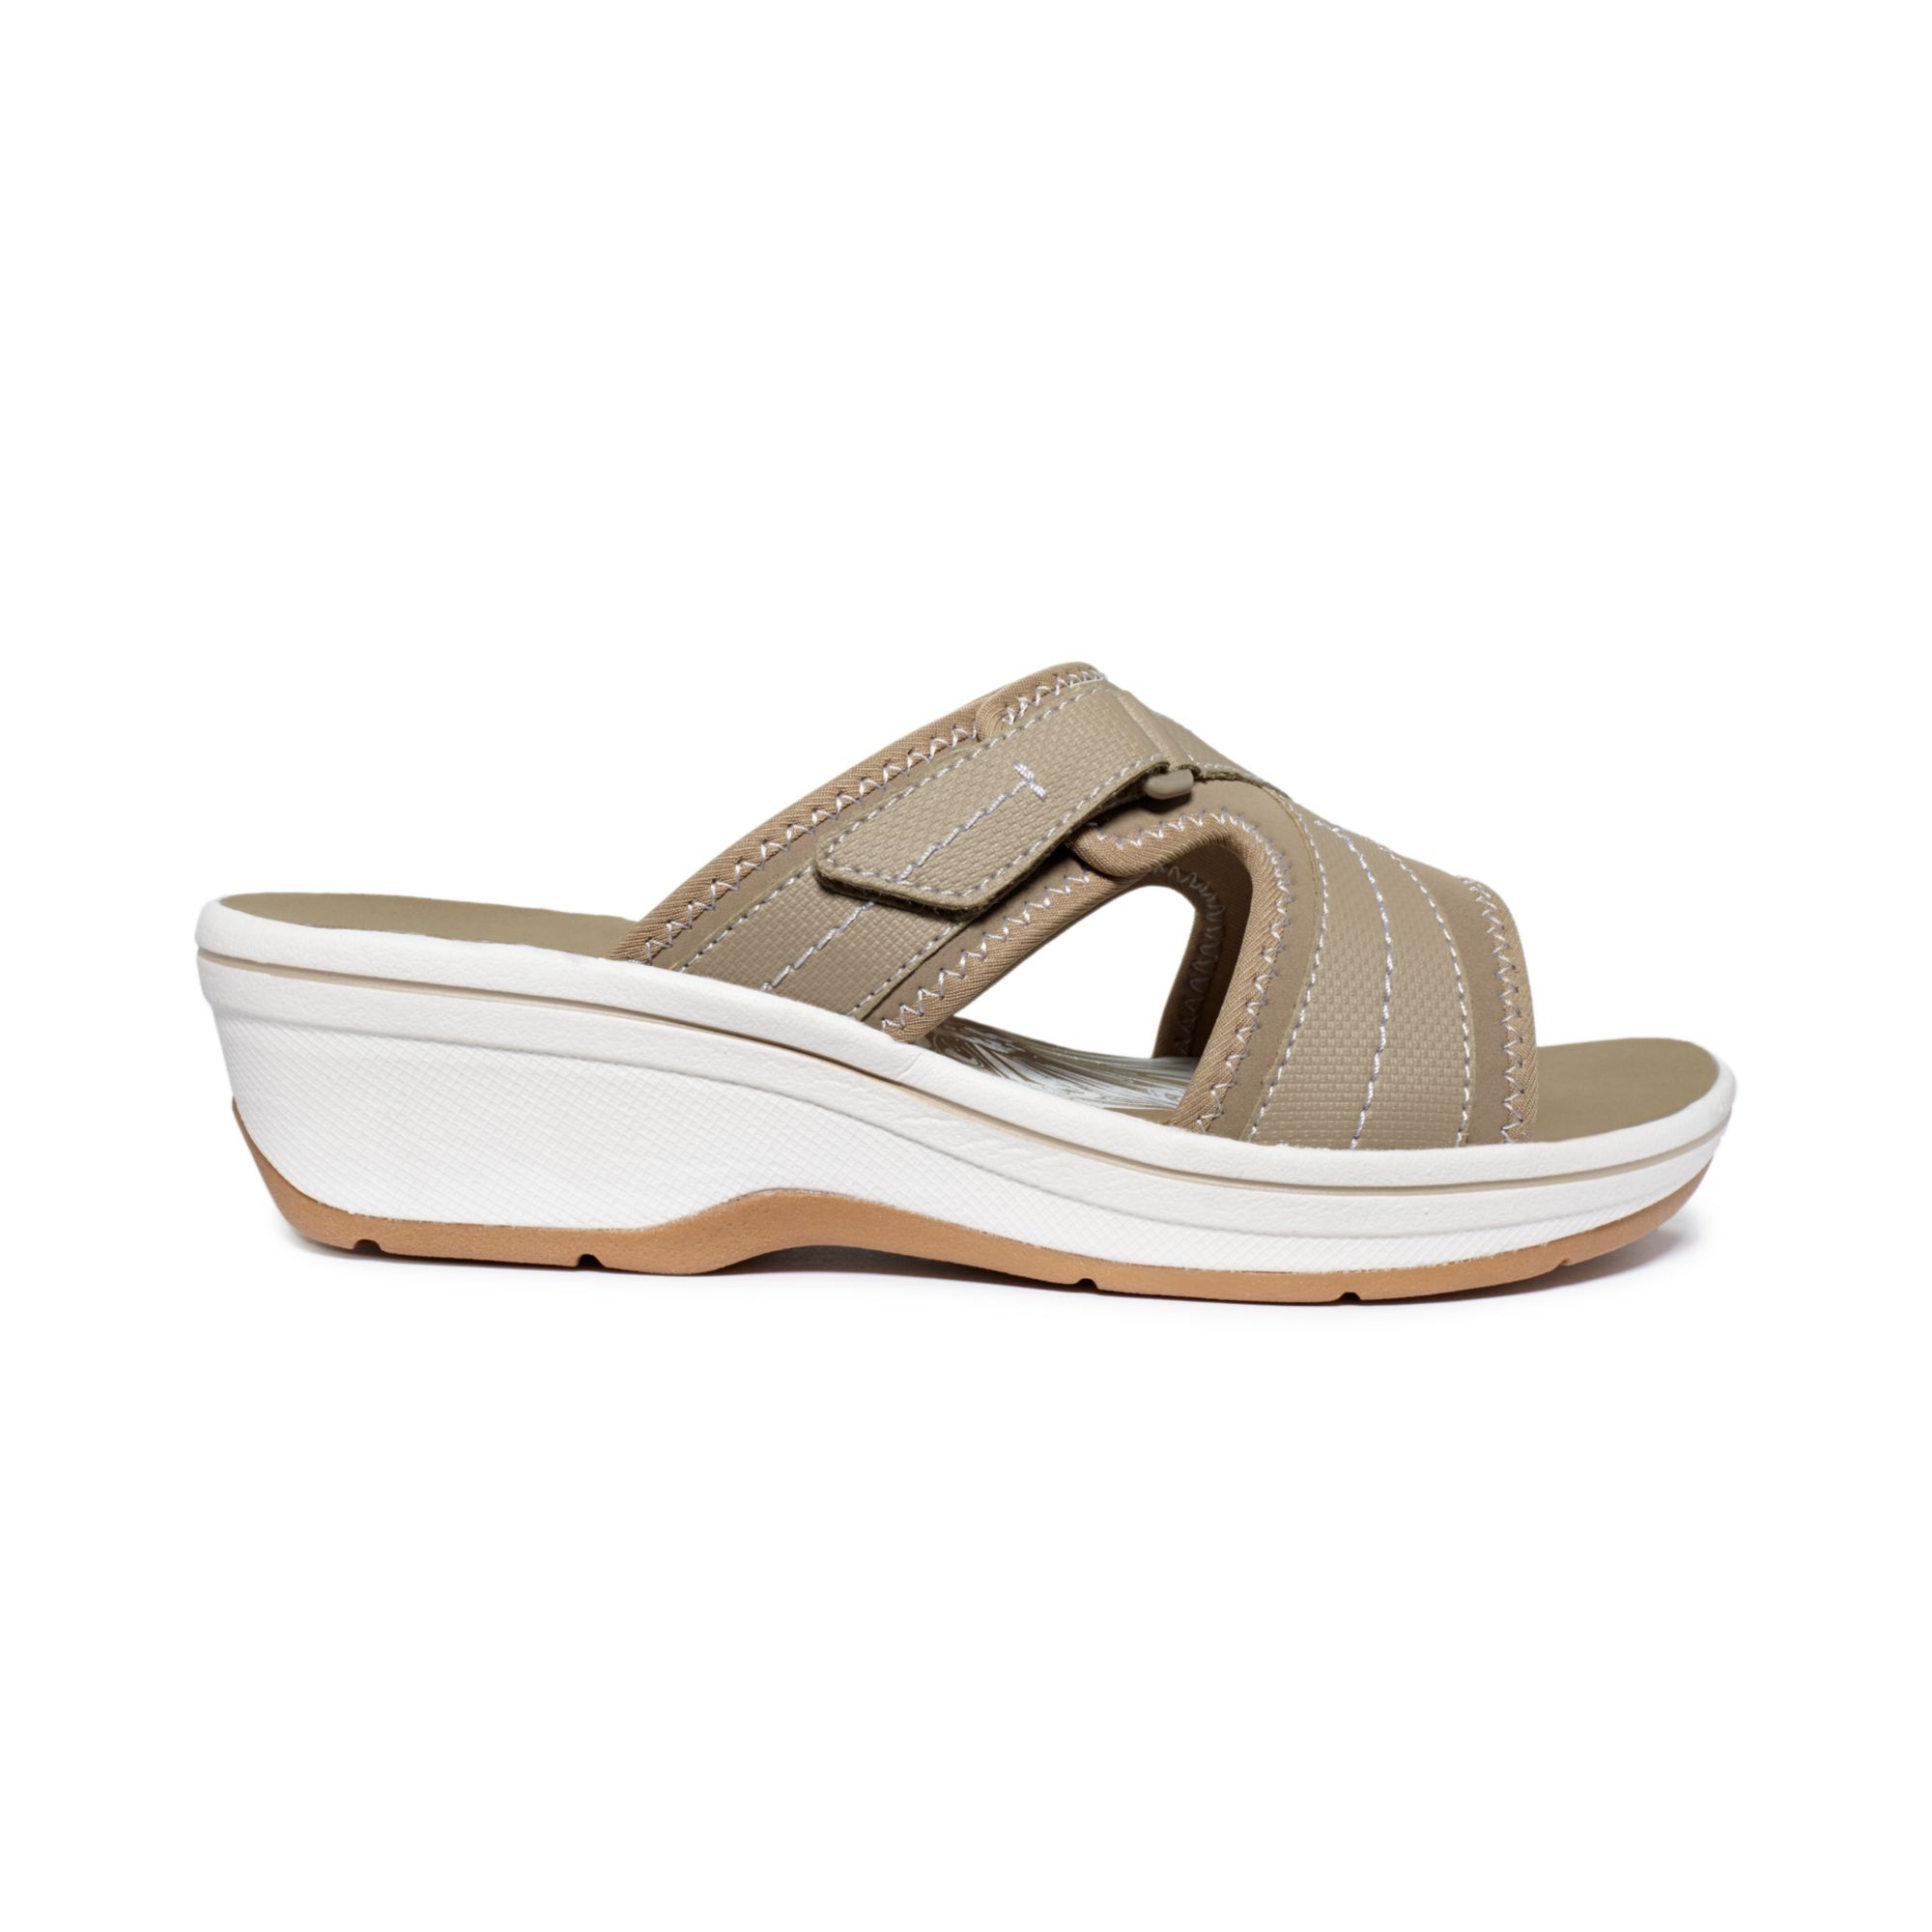 cf7a69f17b8c Lyst clarks daisy drift sandals in gray jpg 2000x2000 Drift clarks daisy  sandals